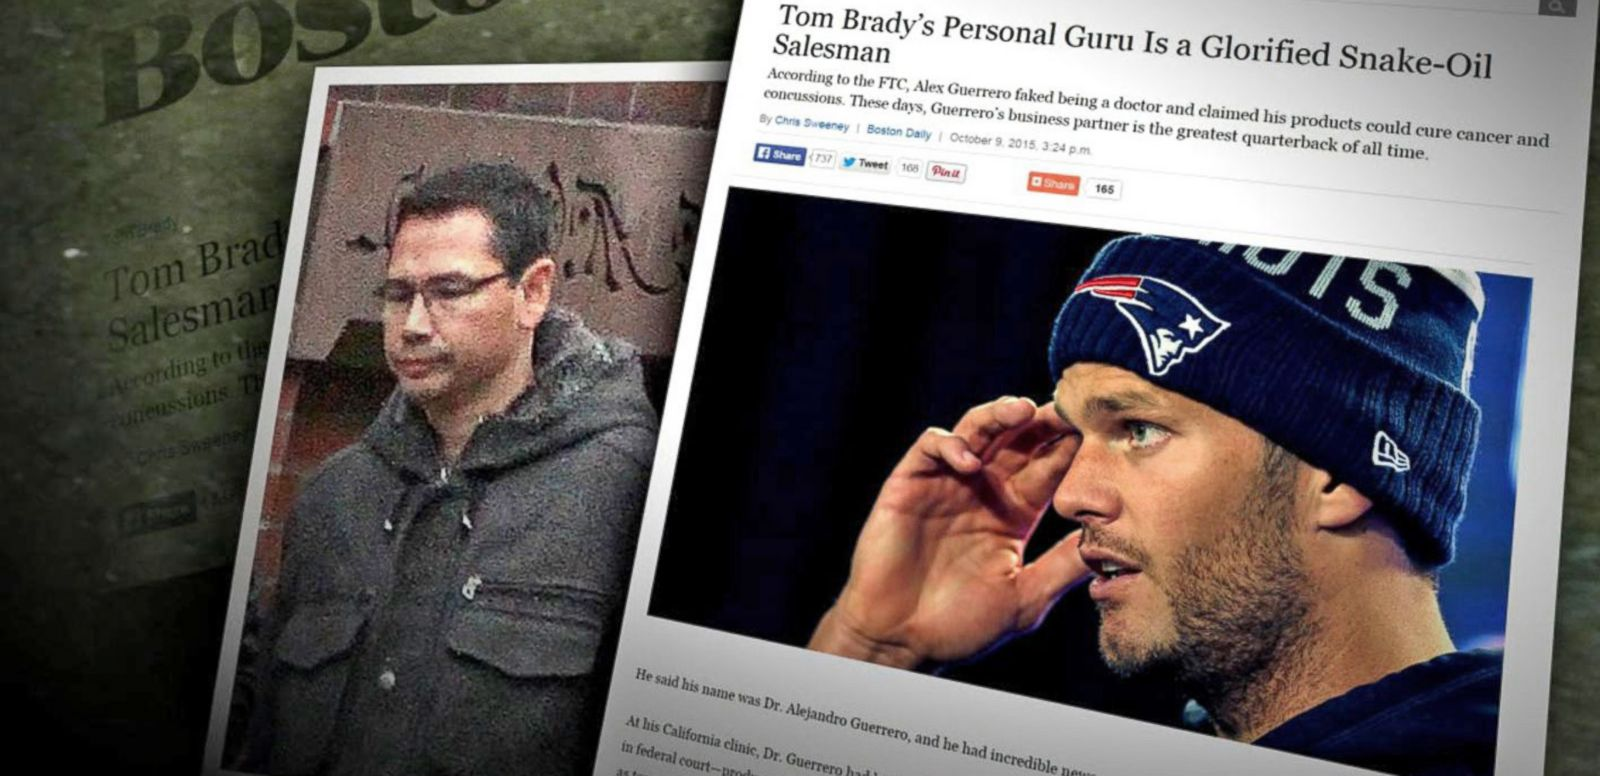 VIDEO: Tom Brady Defends Controversial Trainer